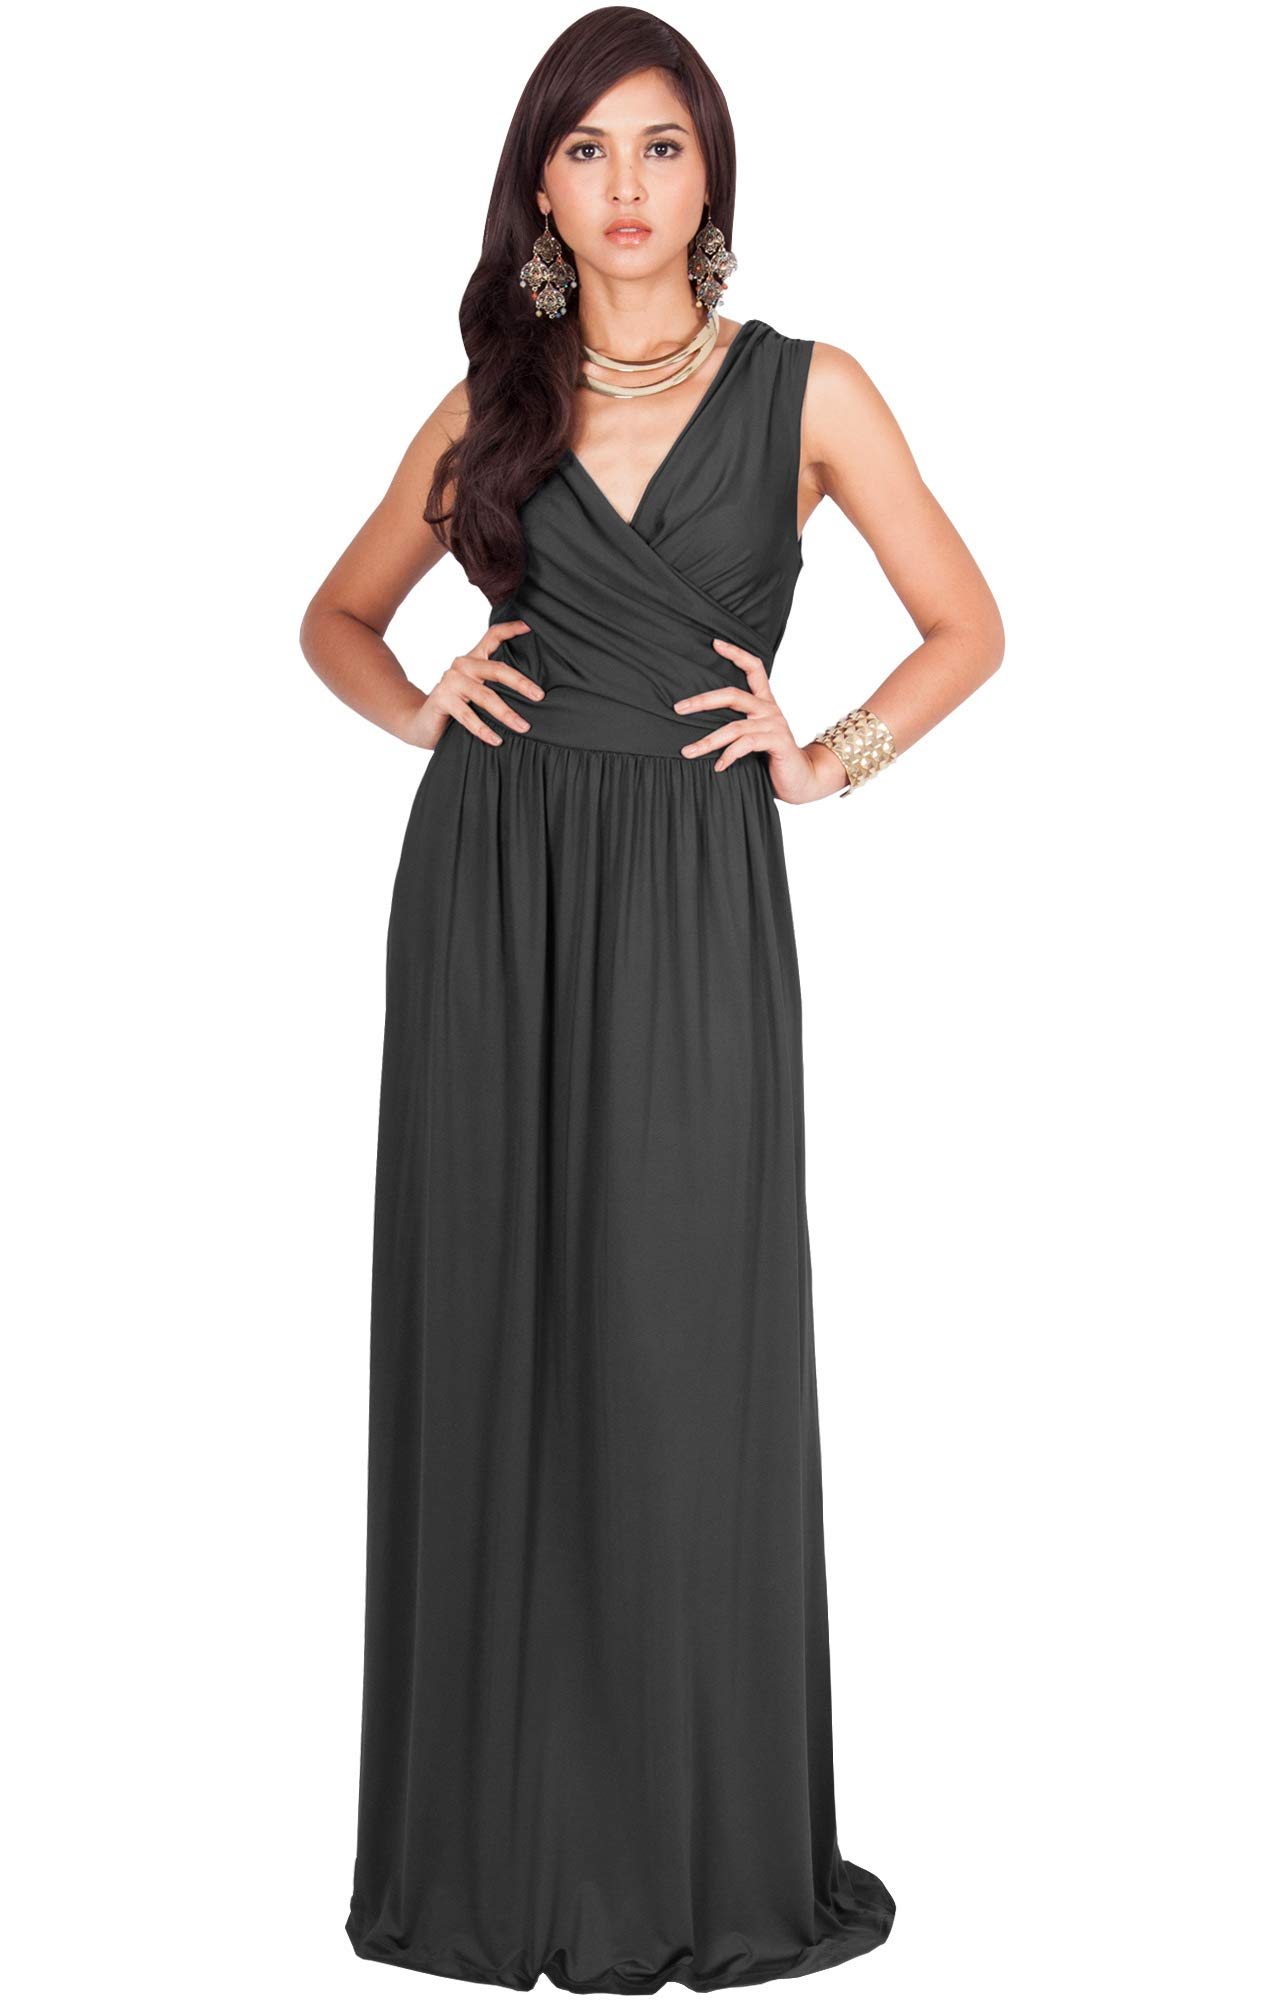 3f317356e7 KOH KOH Petite Womens Long Sleeveless Sexy Summer Semi Formal Bridesmaid  Wedding Guest Evening Sundress Sundresses Flowy Gown Gowns Maxi Dress  Dresses